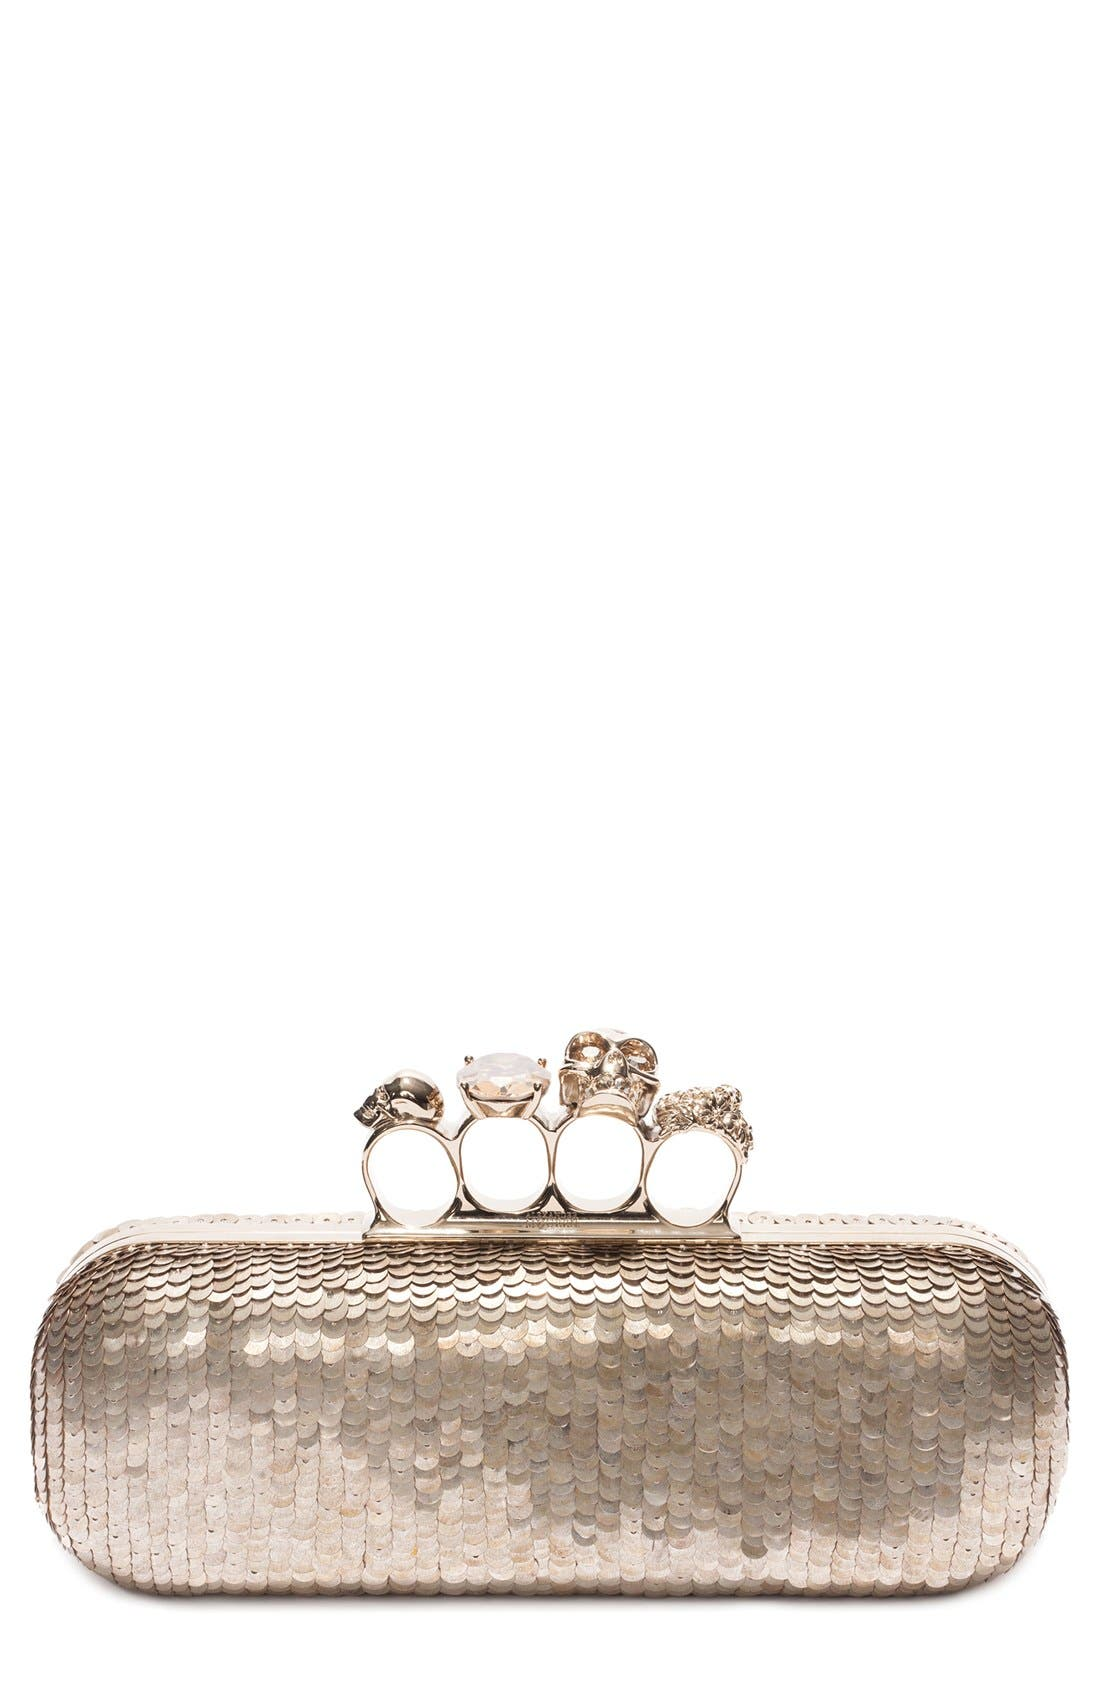 Main Image - Alexander McQueen Knuckle Clasp Leather Box Clutch